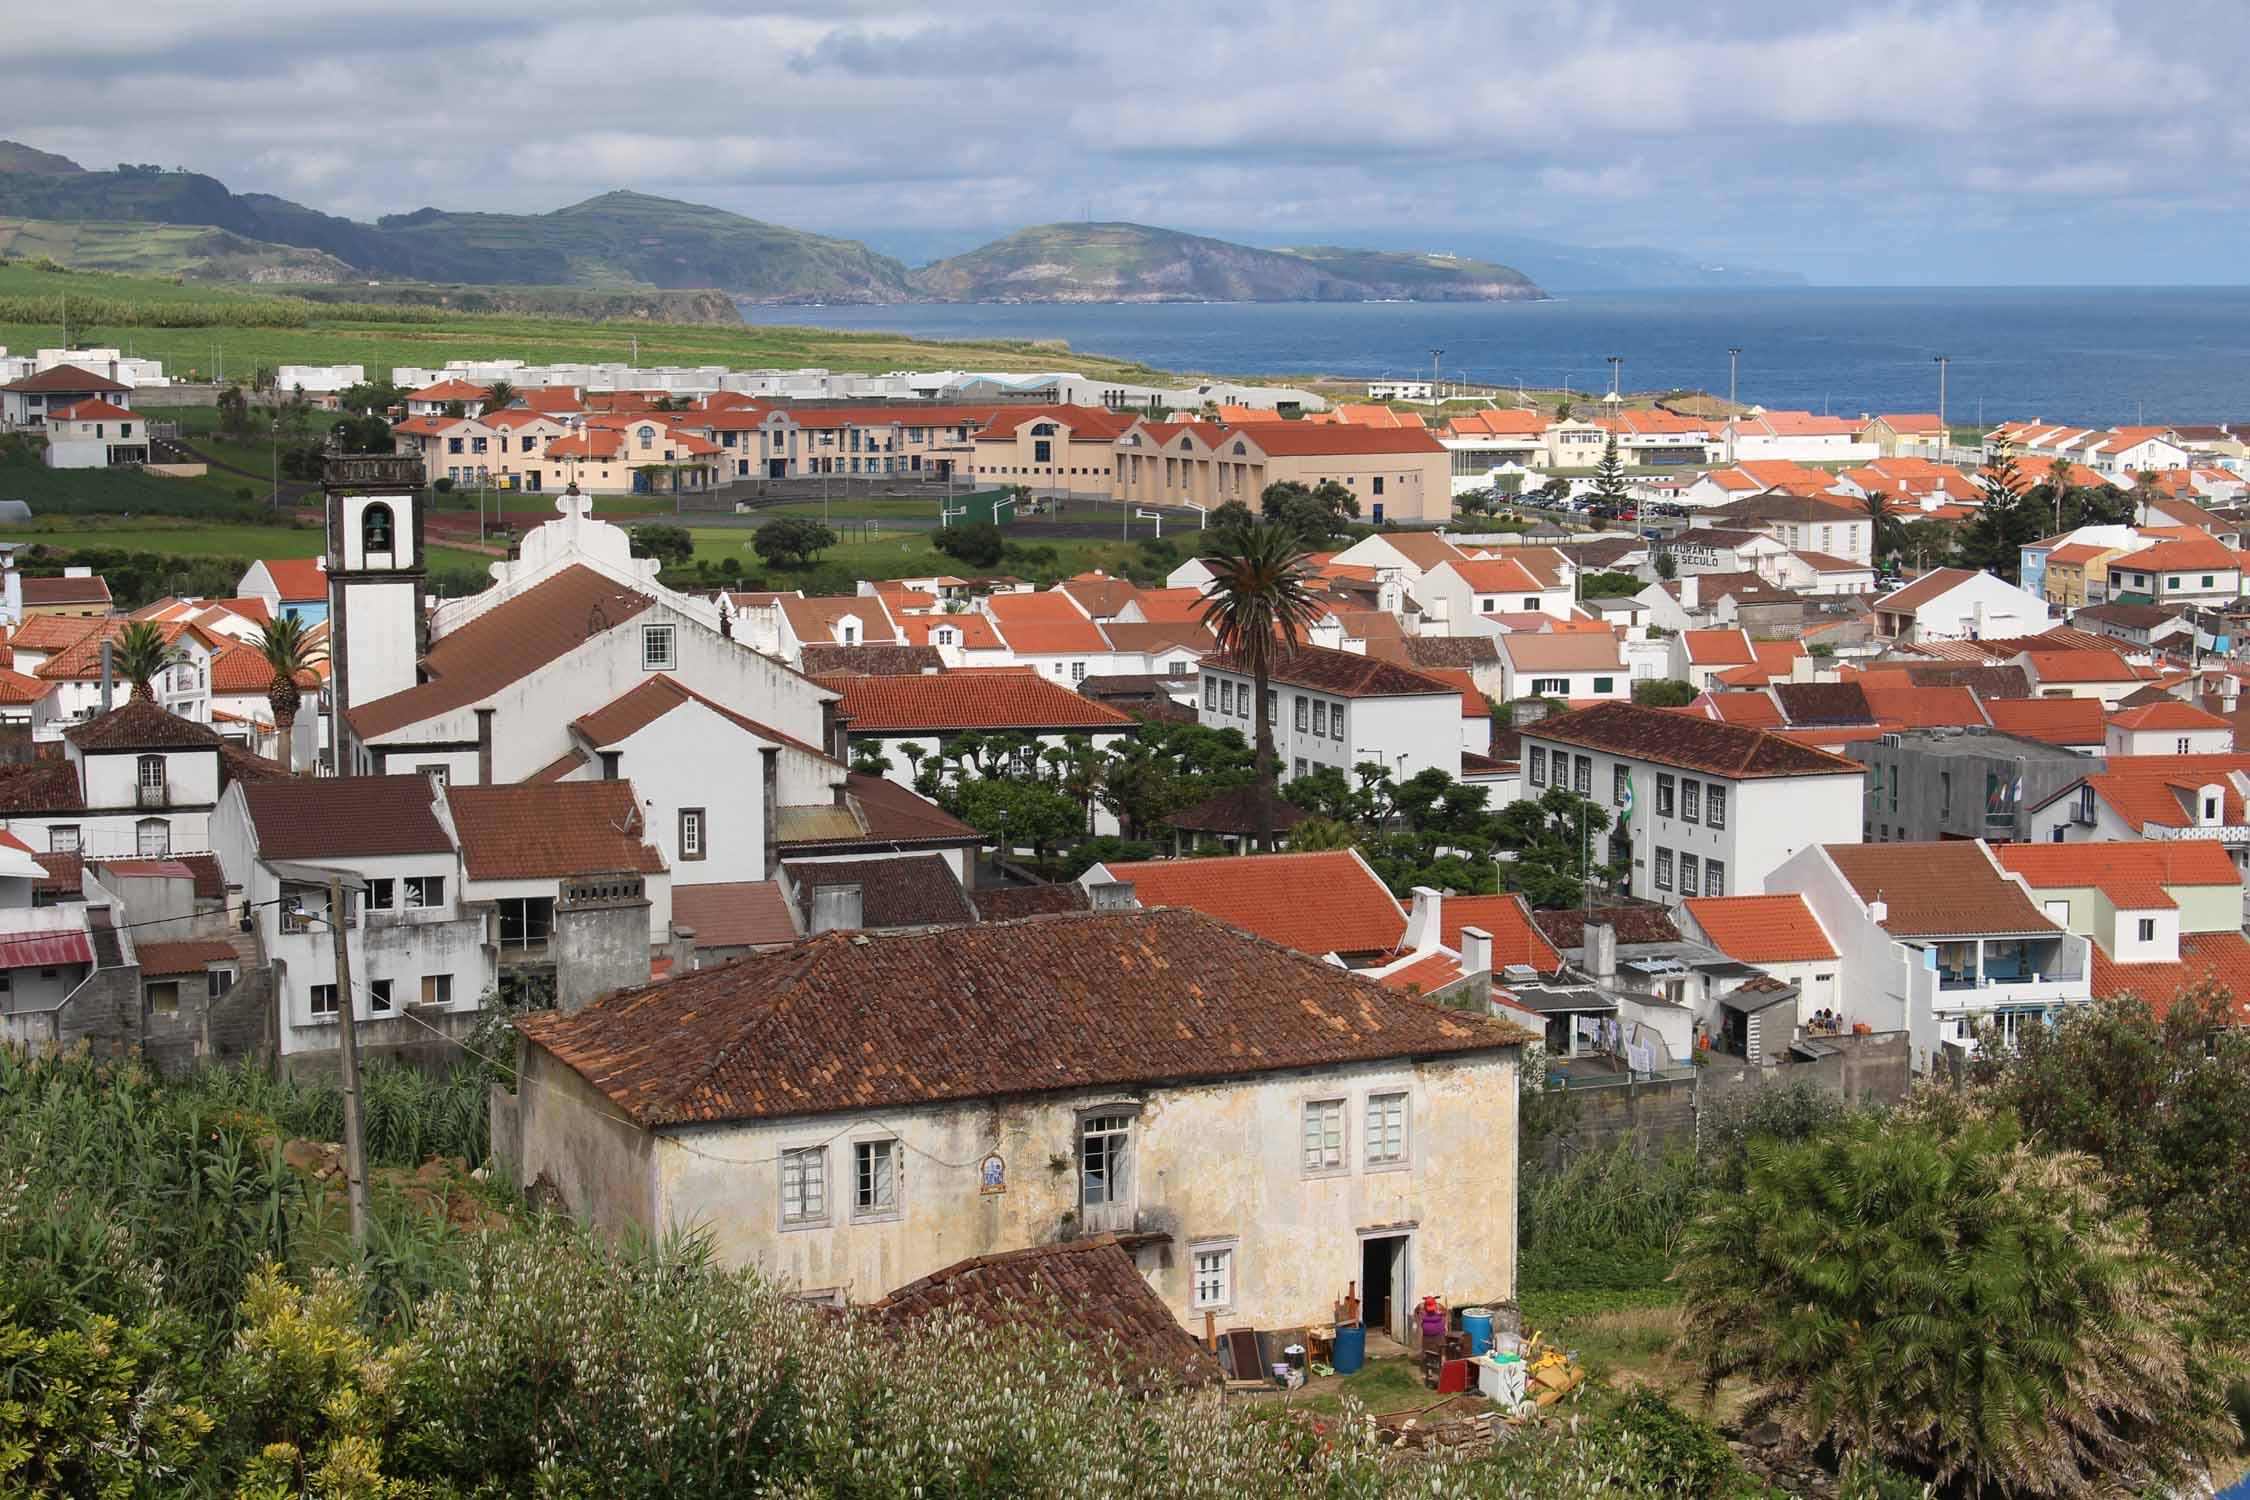 The village of Maia in São Miguel island, Azores